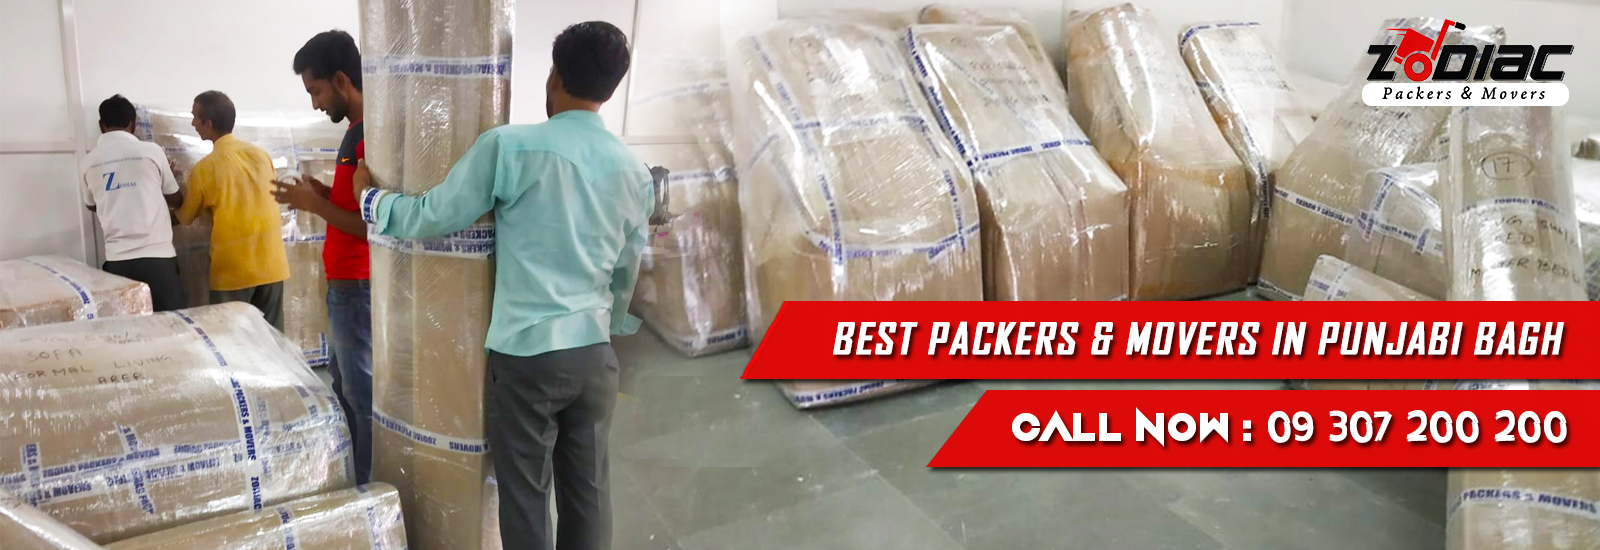 Packers and Movers in Punjabi Bagh